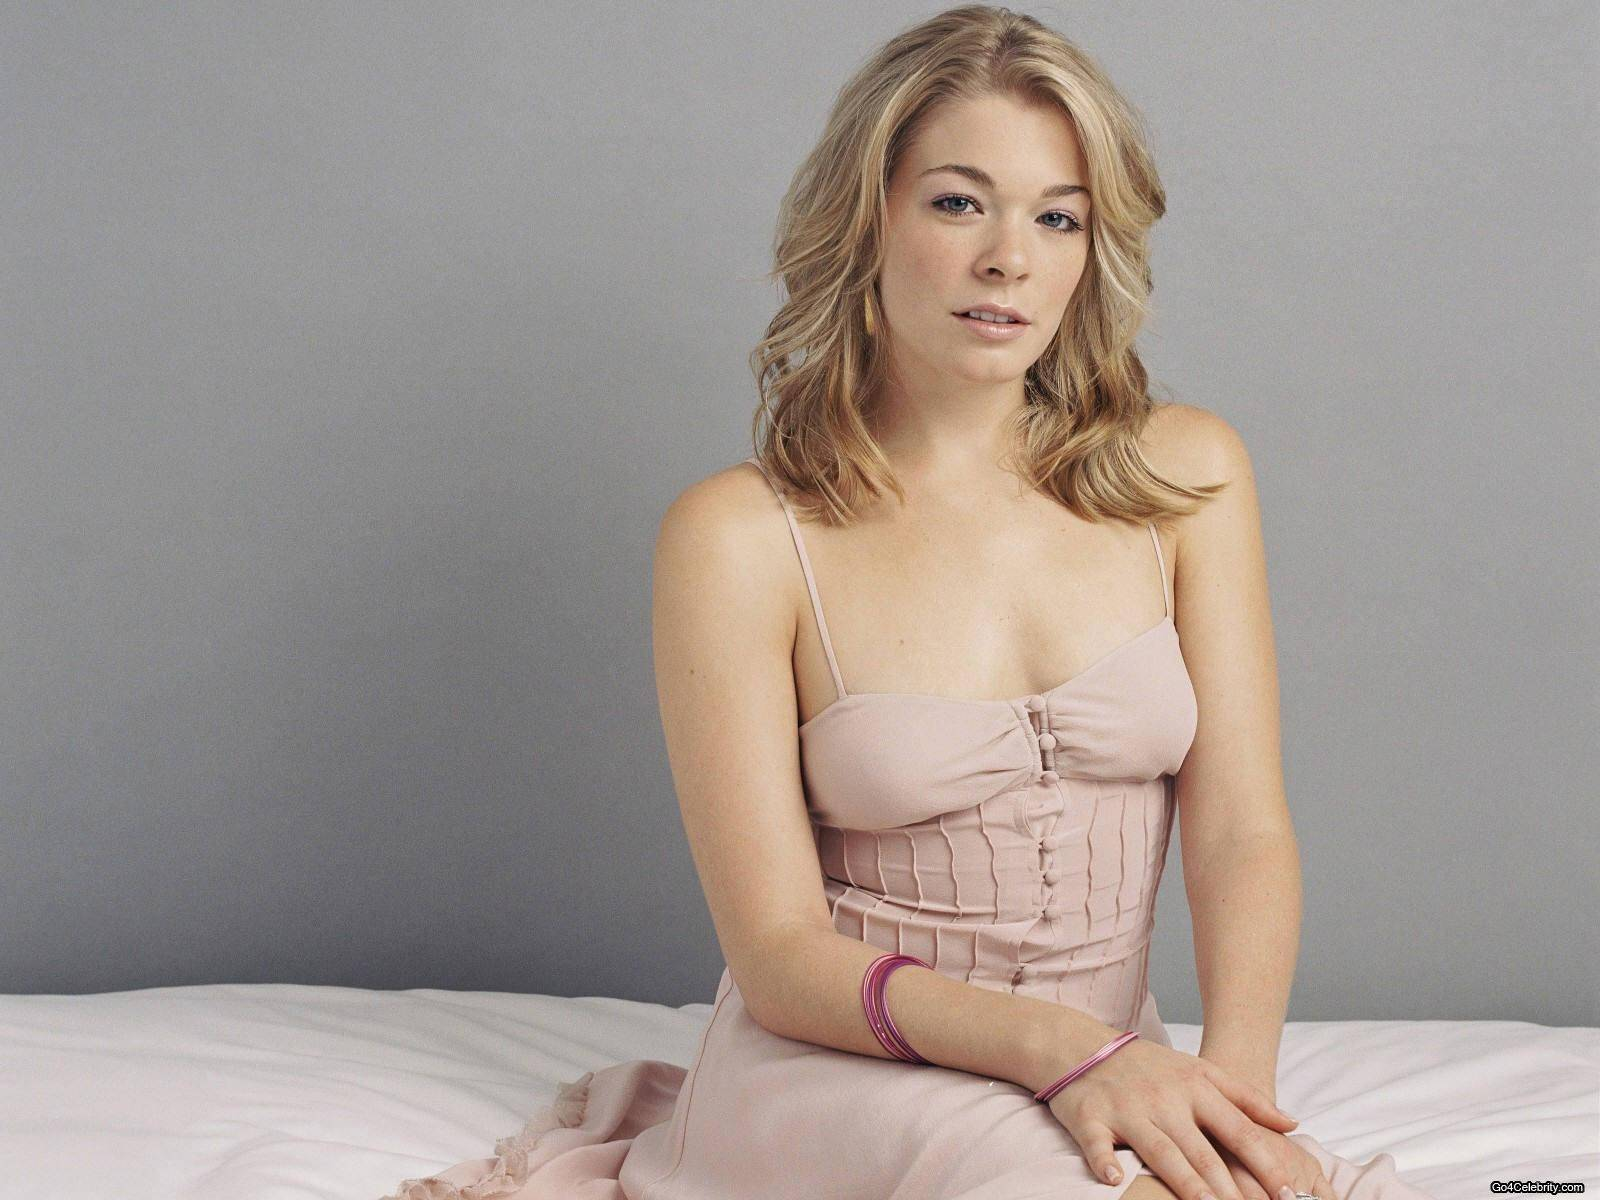 leann_rimes_hd_wallpaper-1600×1200